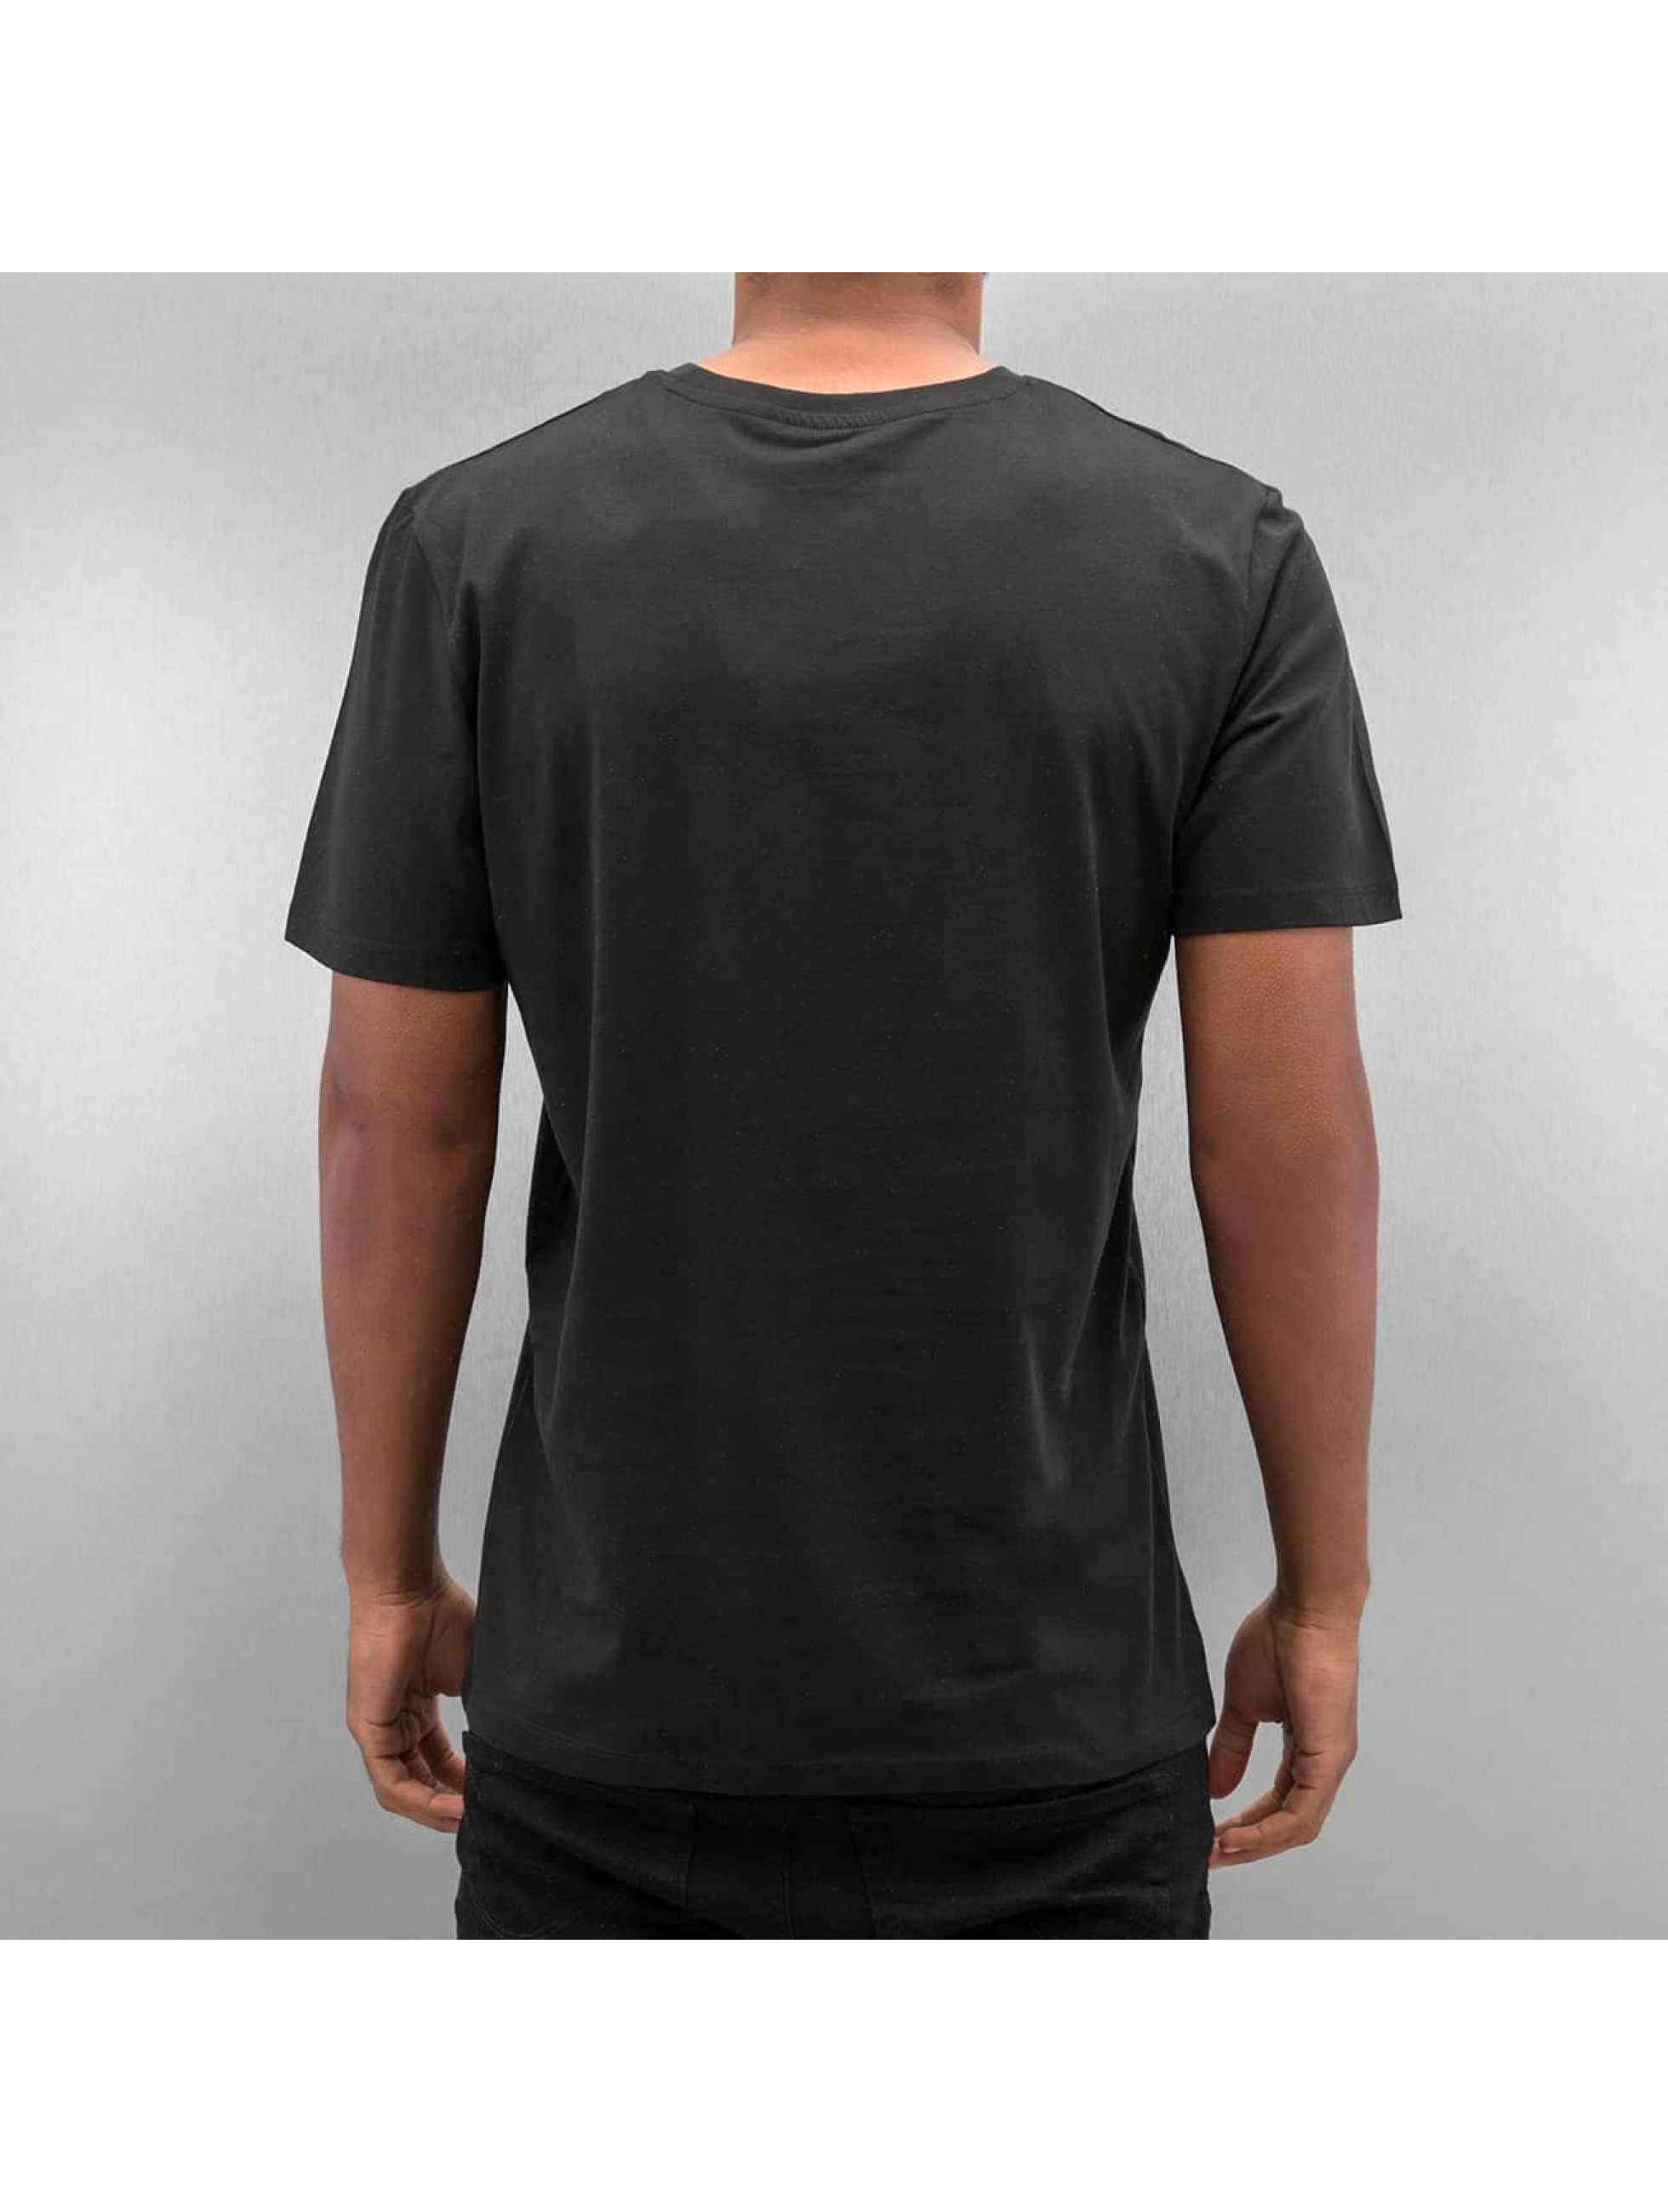 Jack & Jones T-Shirt jcoTable schwarz